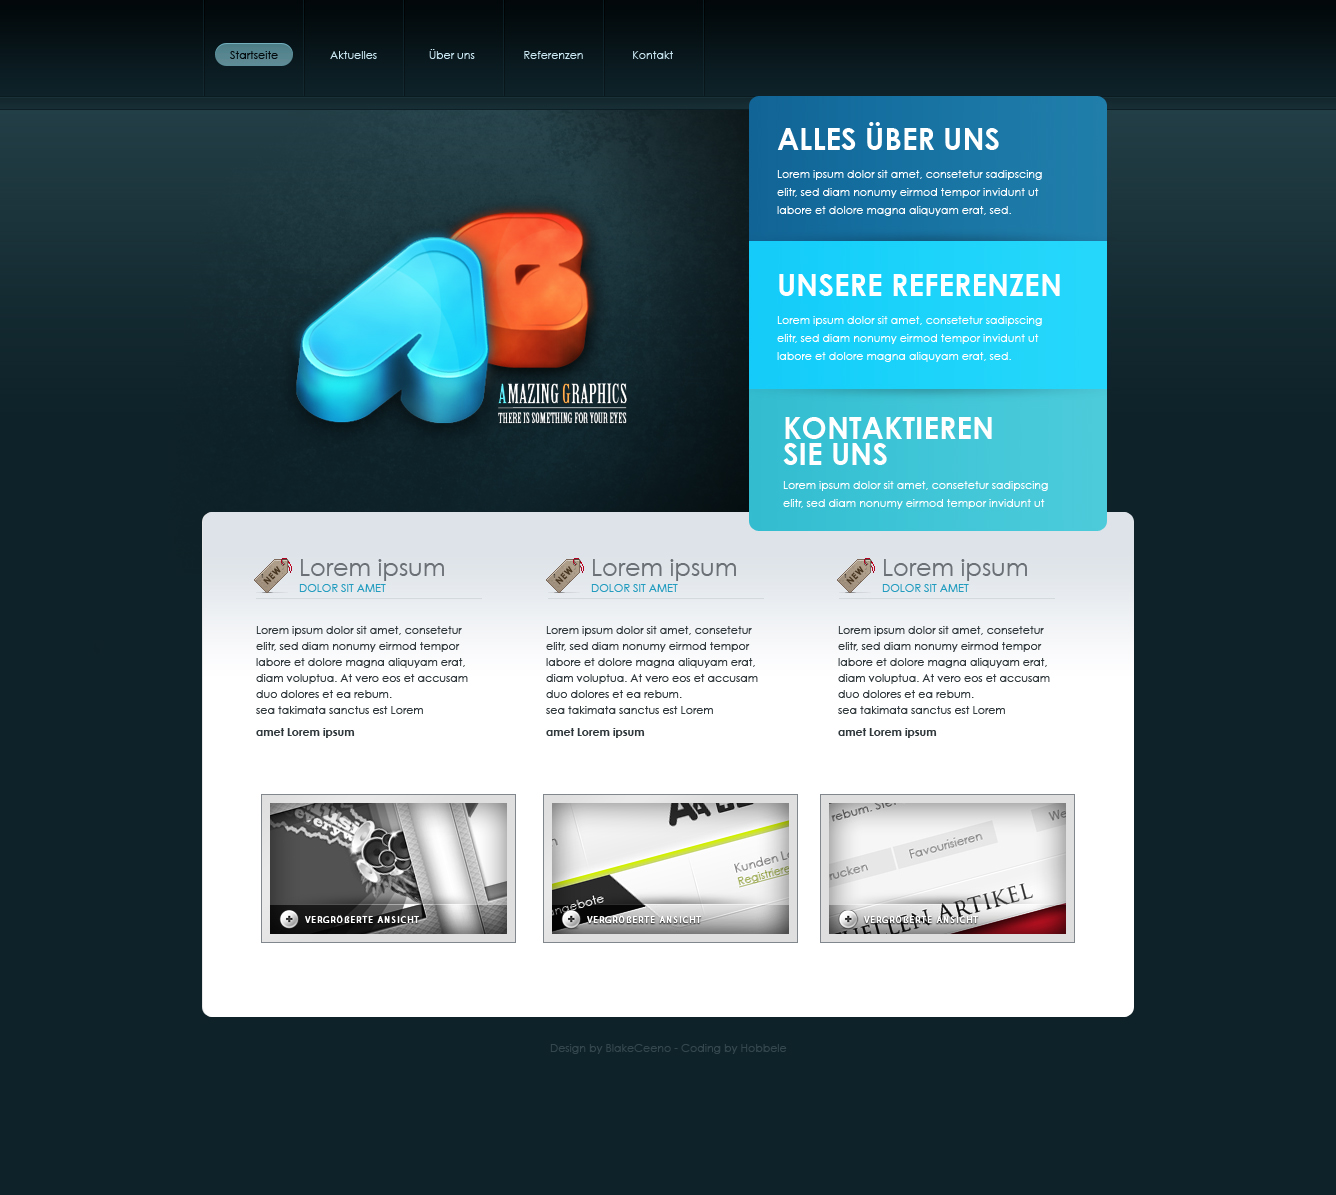 Amazing graphics website by blakeceeno on deviantart for Amazing drawing websites